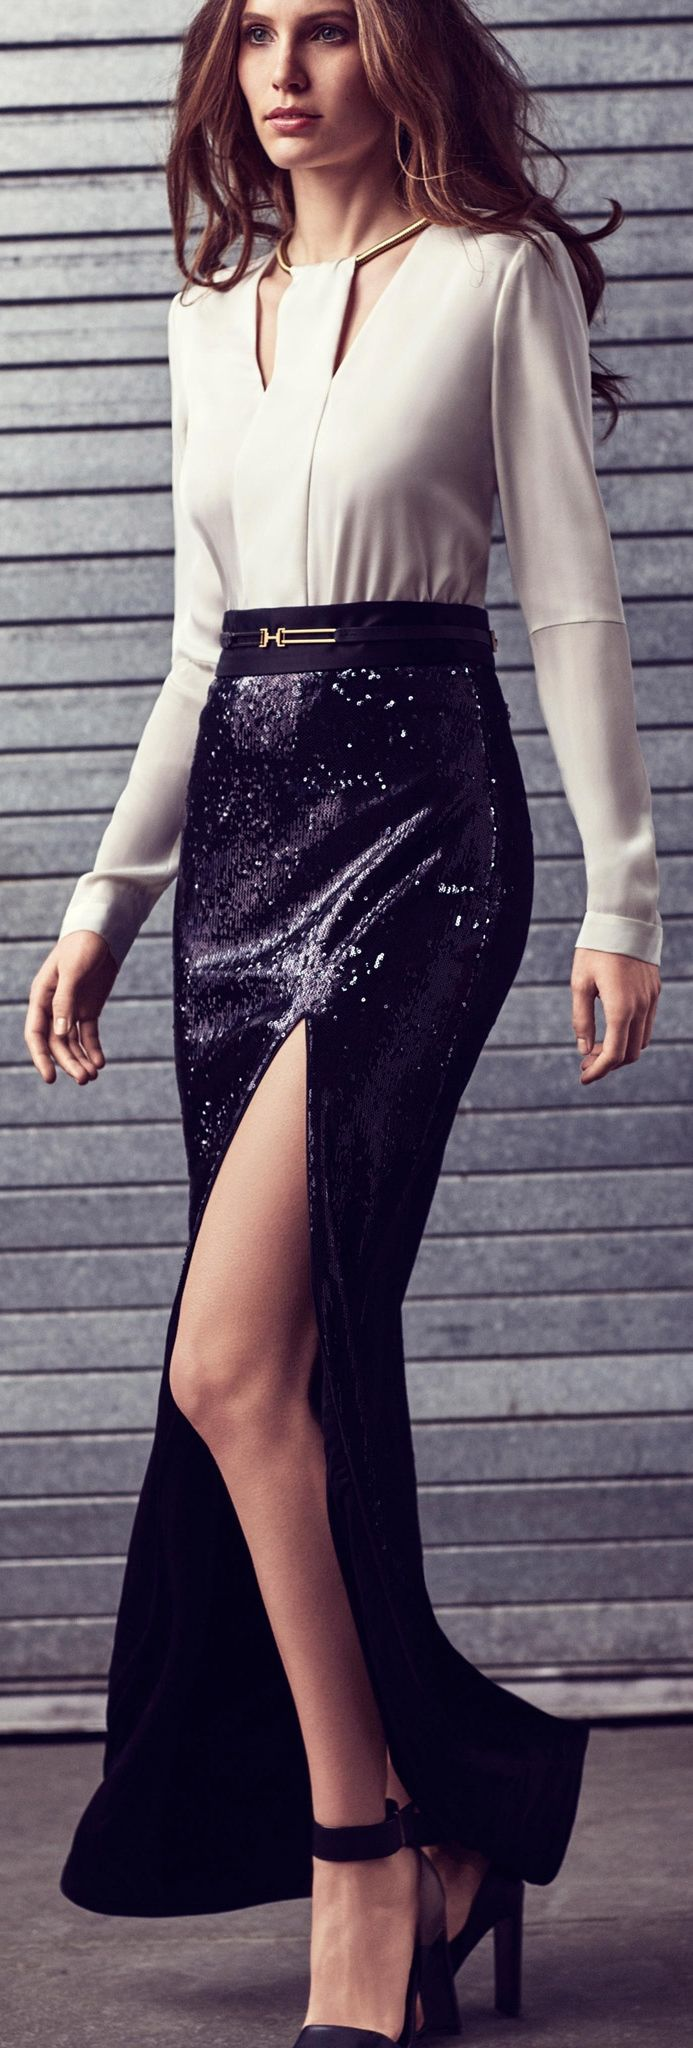 Women's fashion | Halston Heritage slit sequined maxi skirt www.puddycatshoes.com